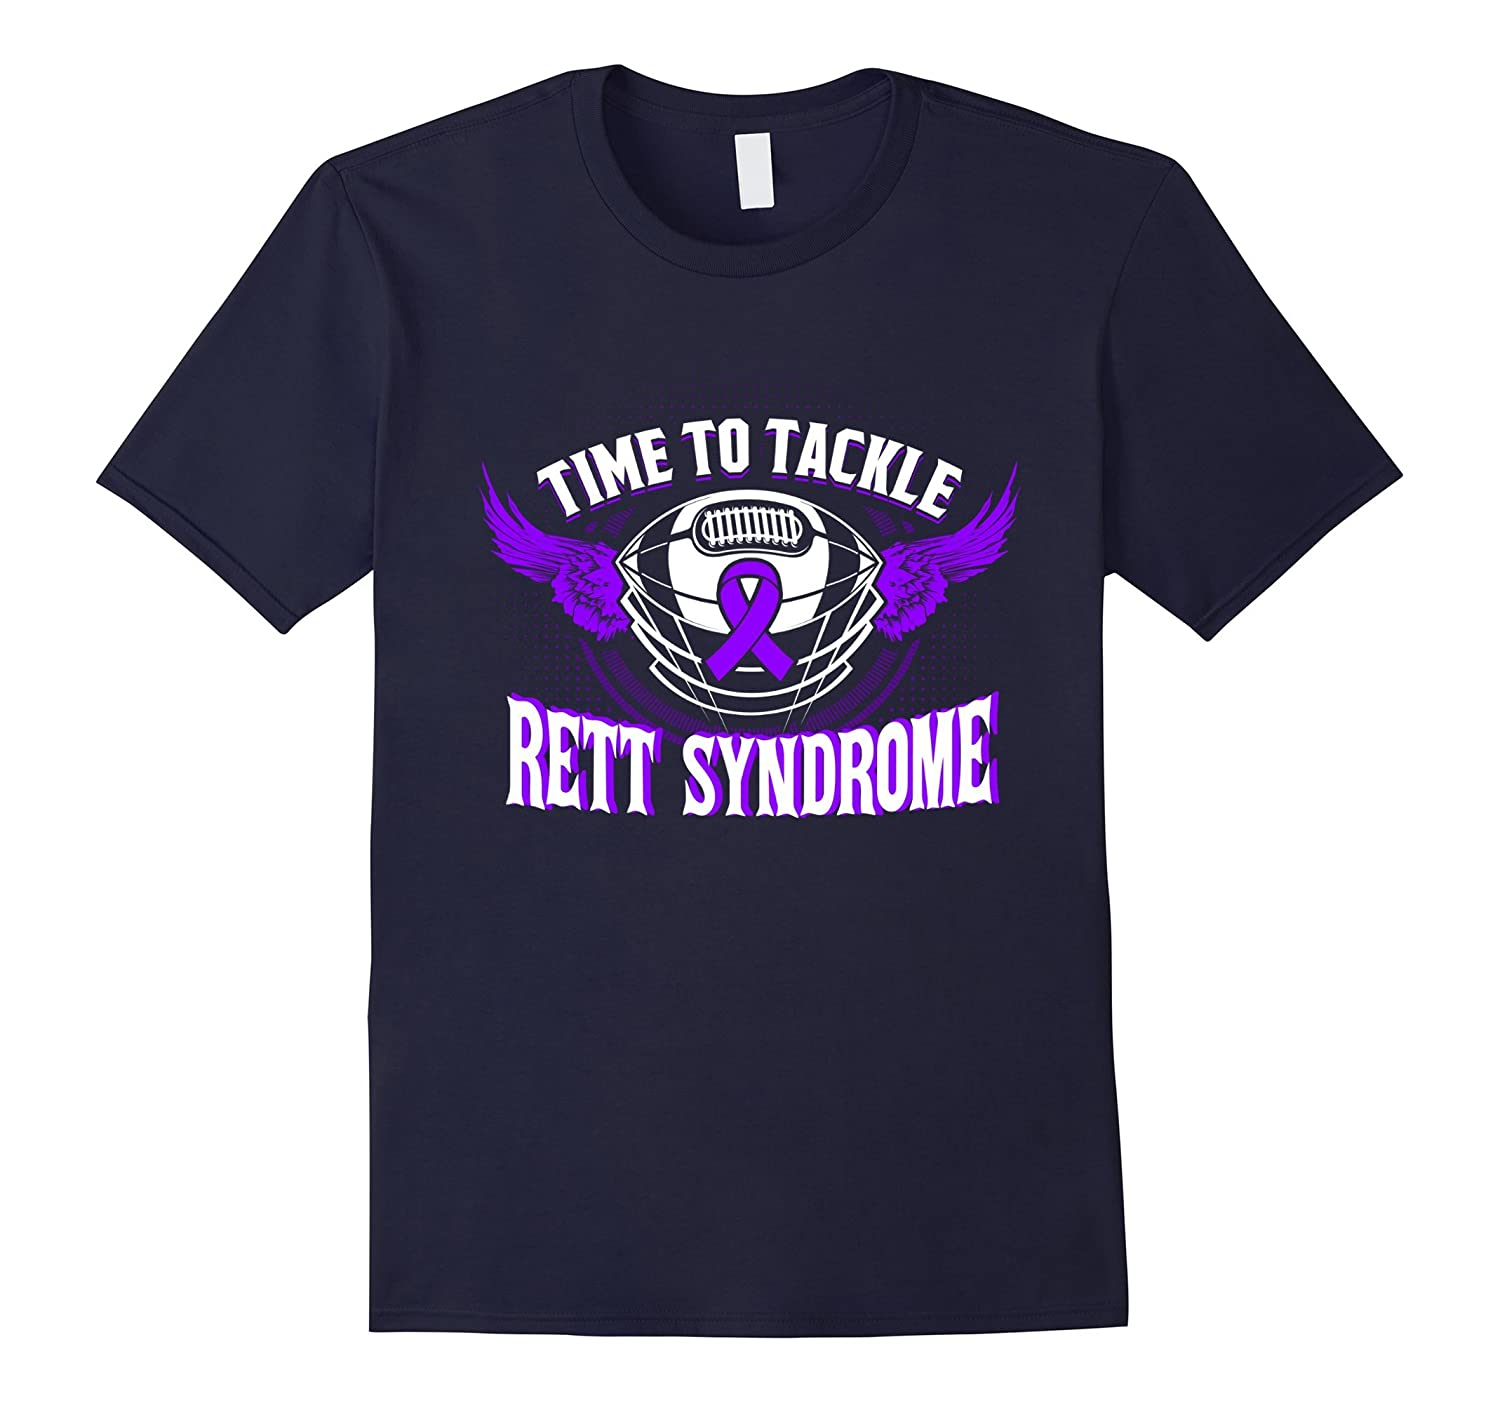 Time To Tackle Rett Syndrome – Rett Syndrome Awareness Shirt